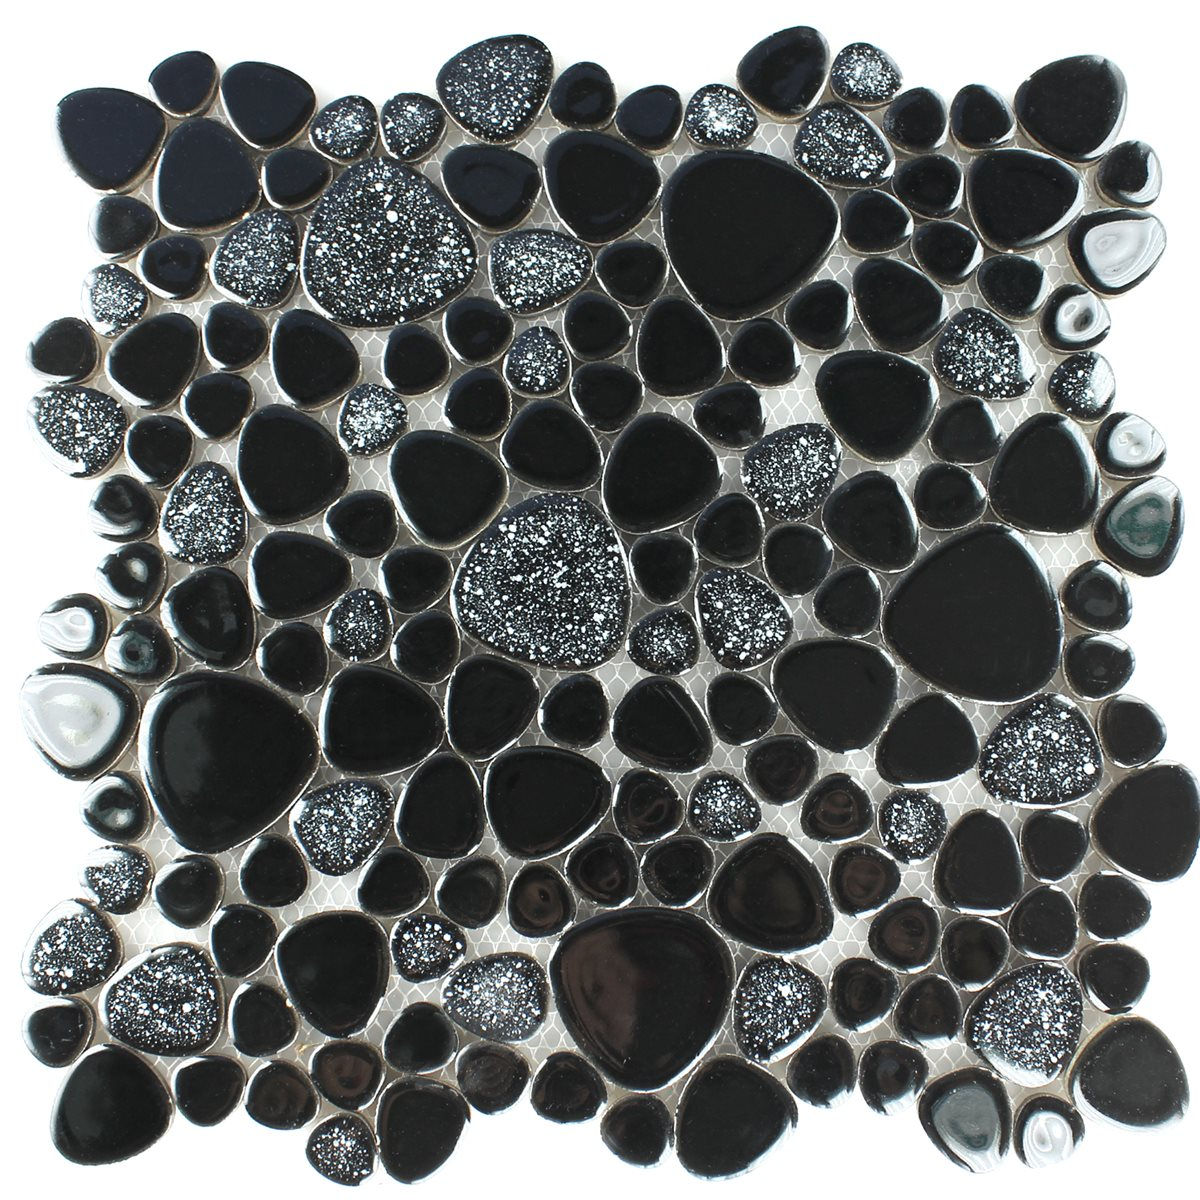 Pebble floor tiles choice image tile flooring design ideas ceramic pebble mosaic black tm33127m mosaic tiles ceramic pebble black doublecrazyfo choice image doublecrazyfo Gallery